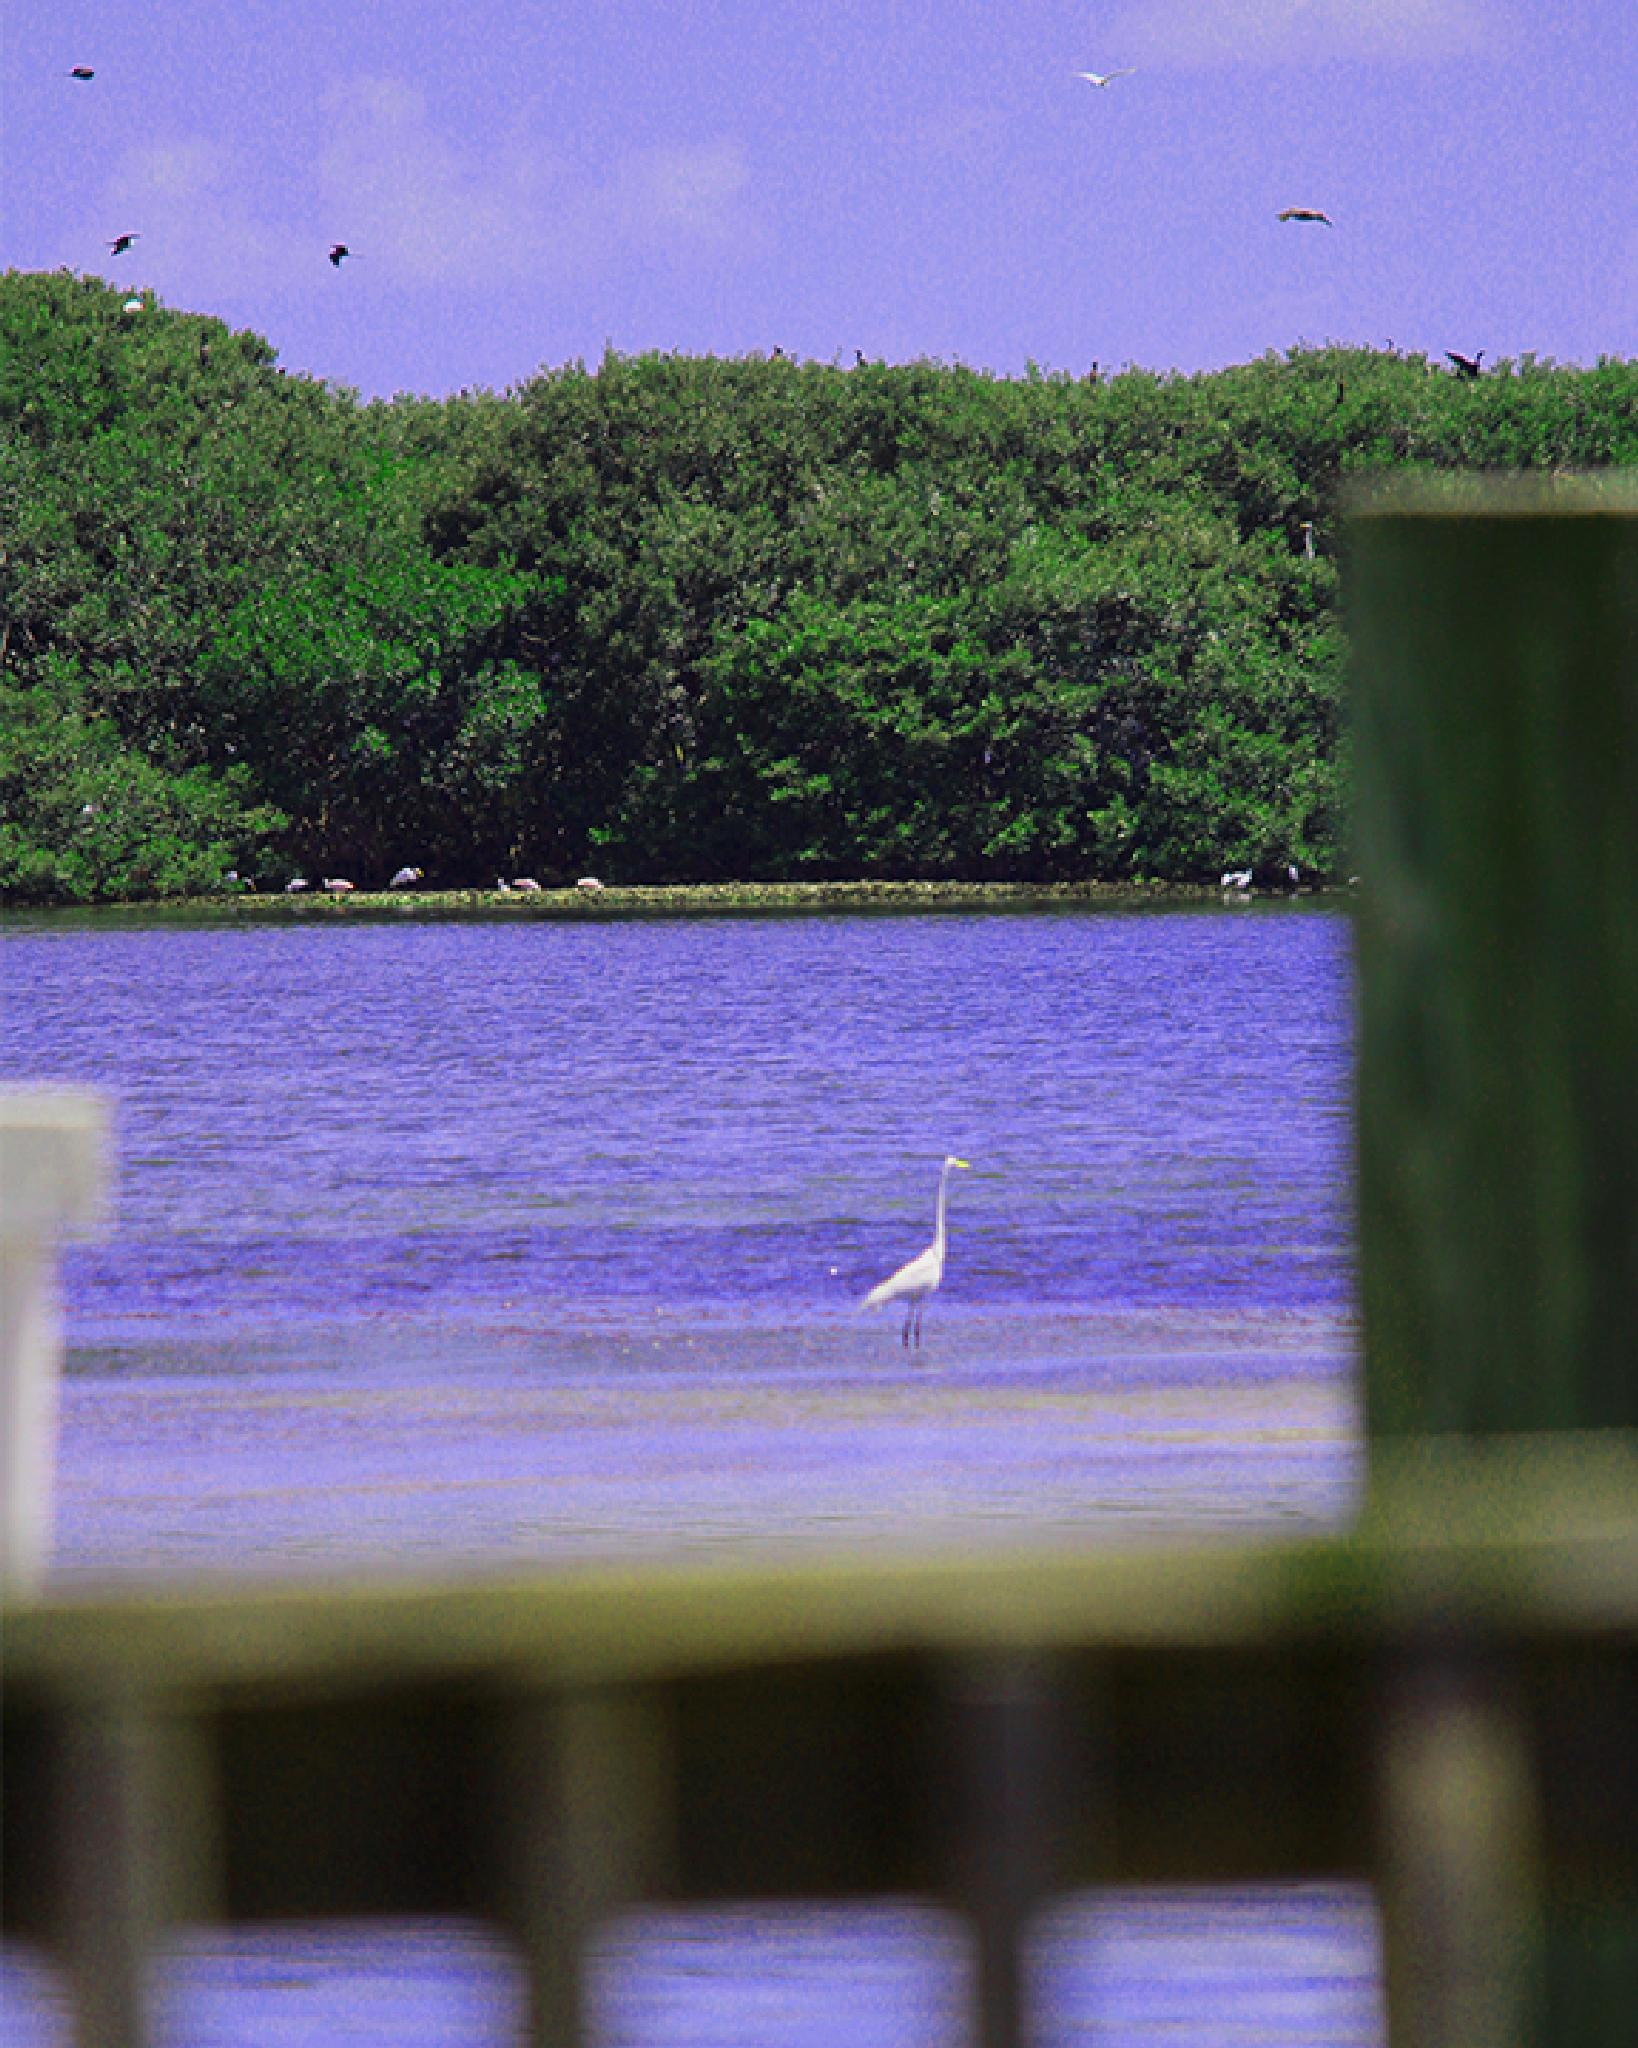 Solitary Crane as seen from Dock. by Xuryon